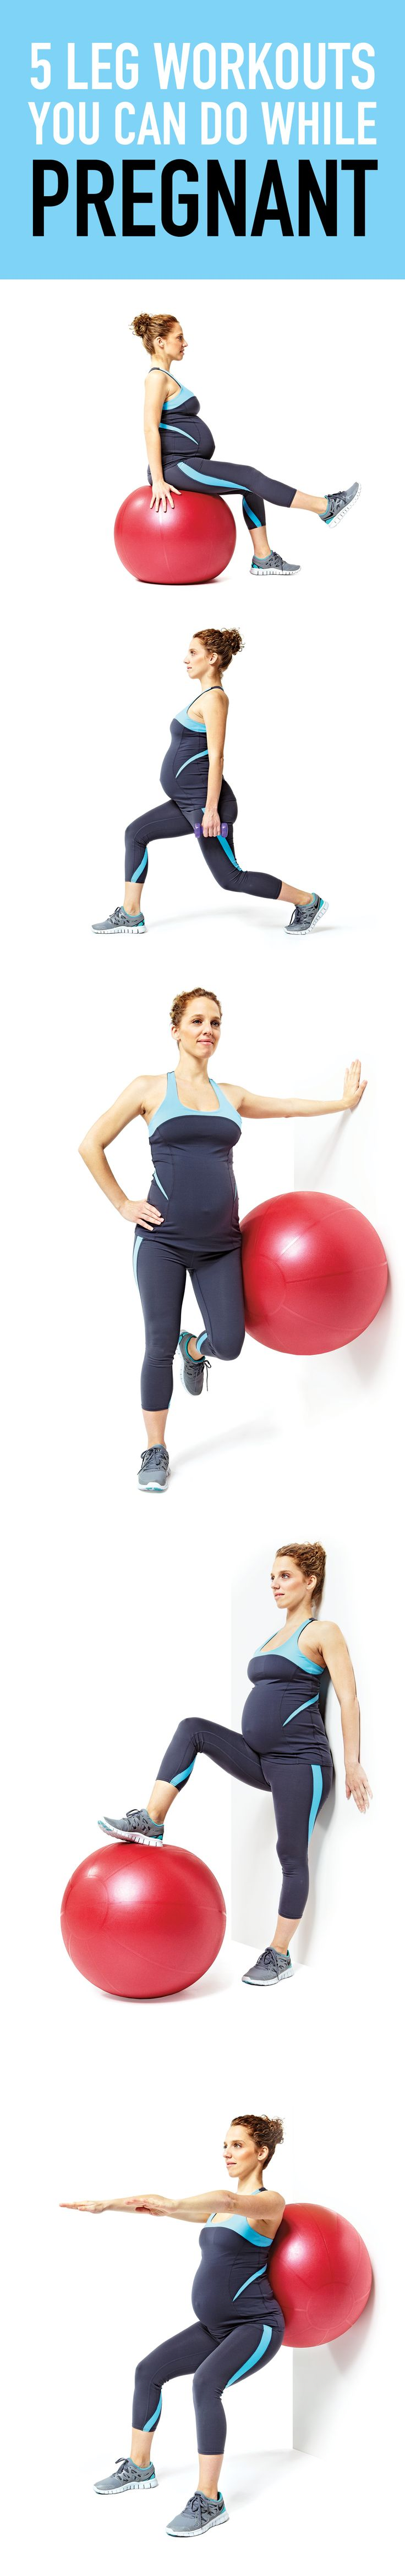 This specially designed pregnancy workout will target your legs! #pregnancy #pregnancyfitness #fitness